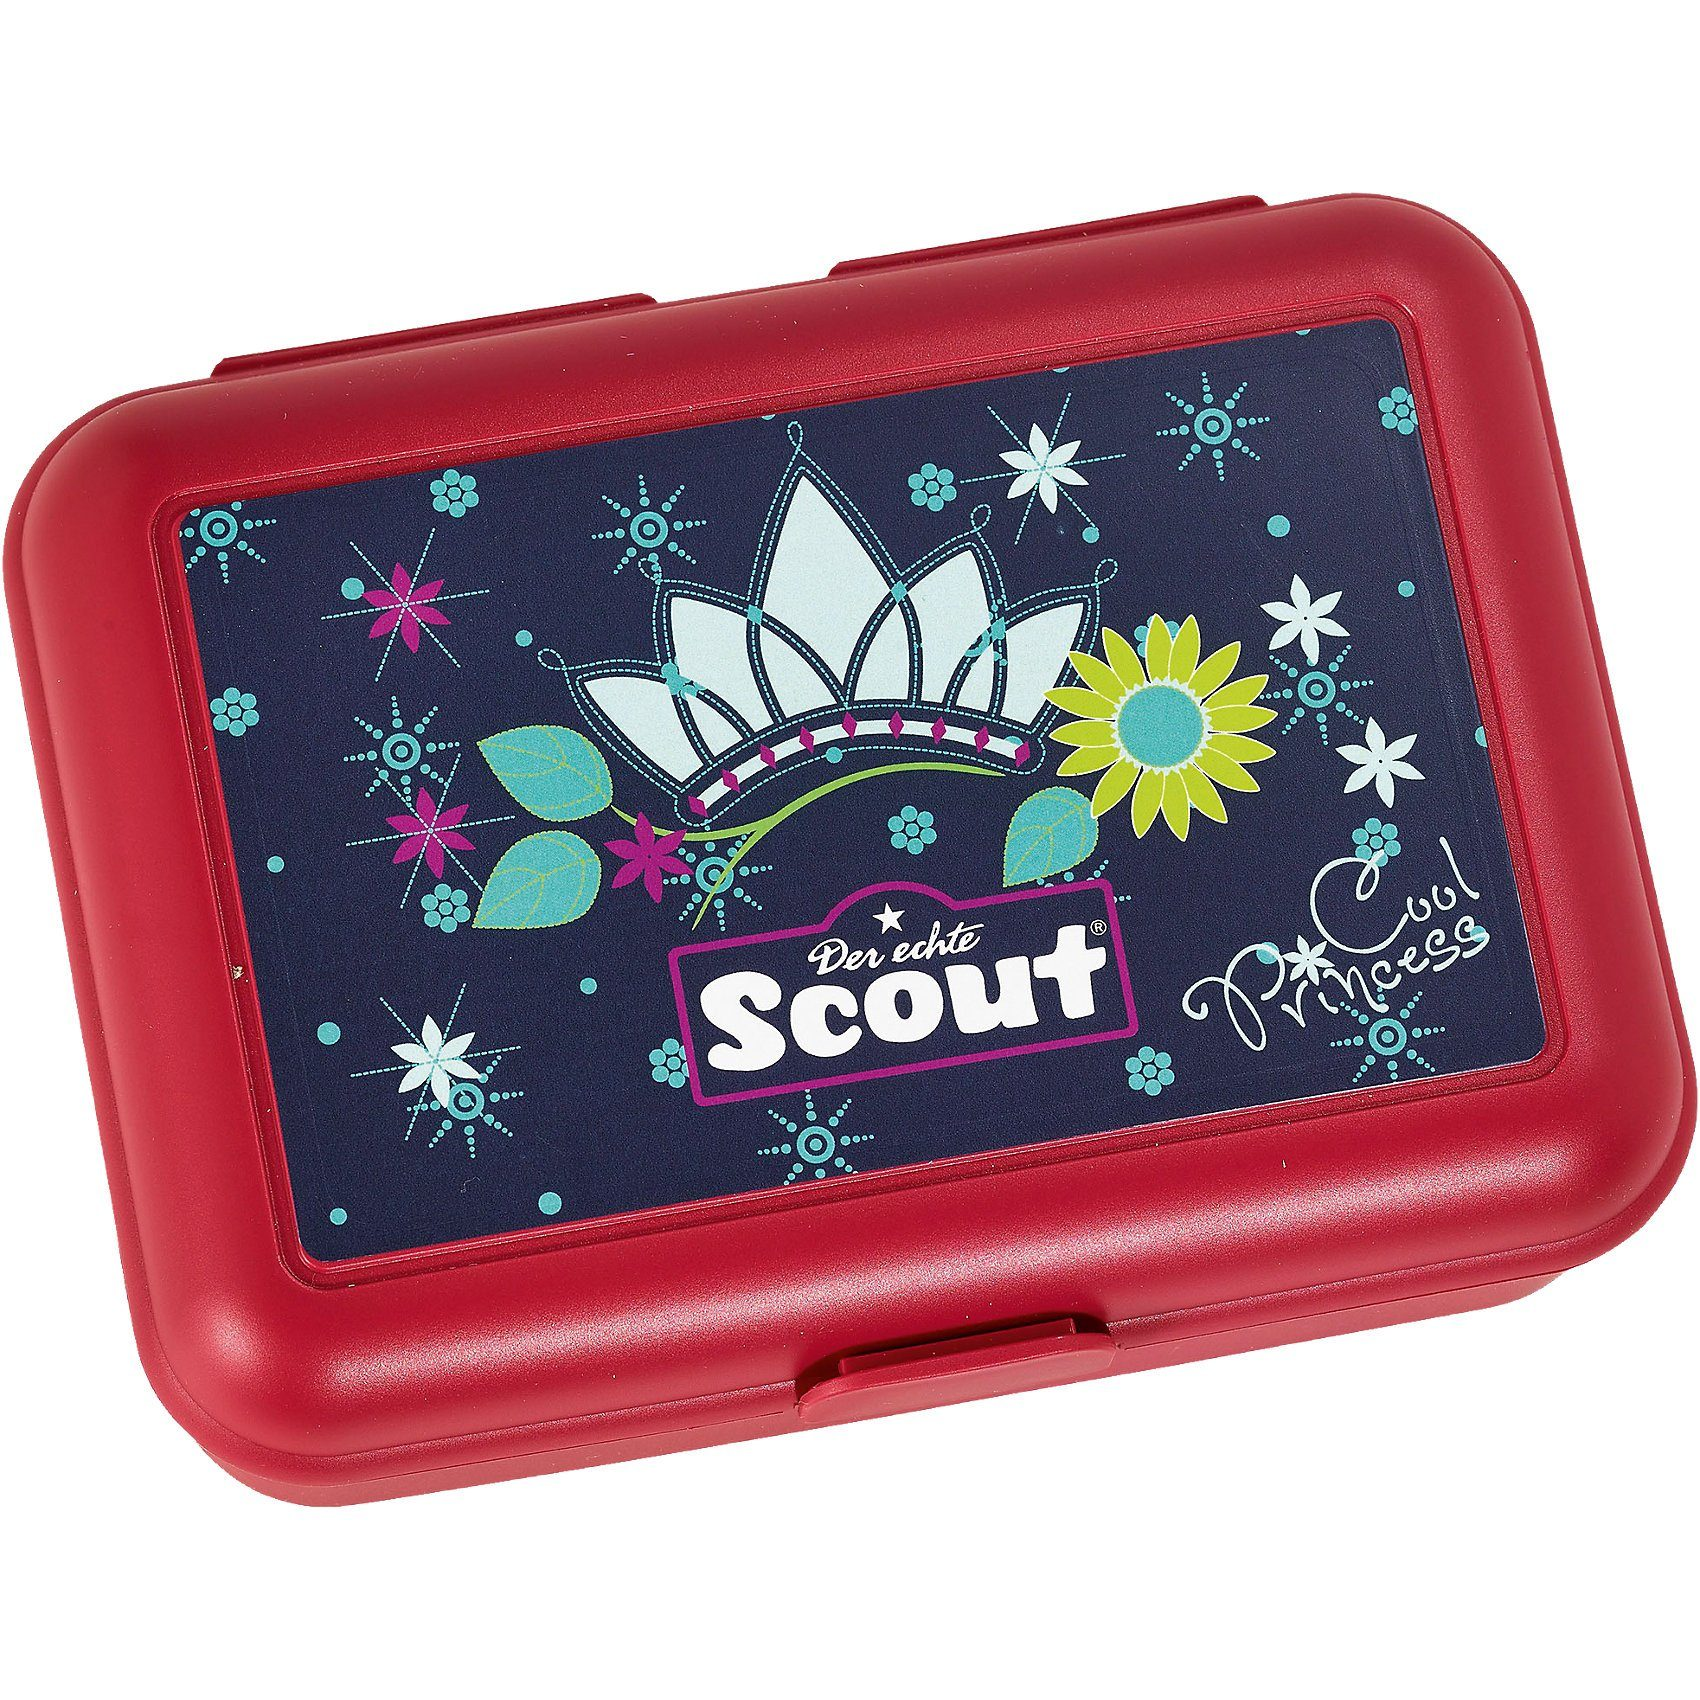 Scout Brotdose Cool Princess (Kollektion 2018)